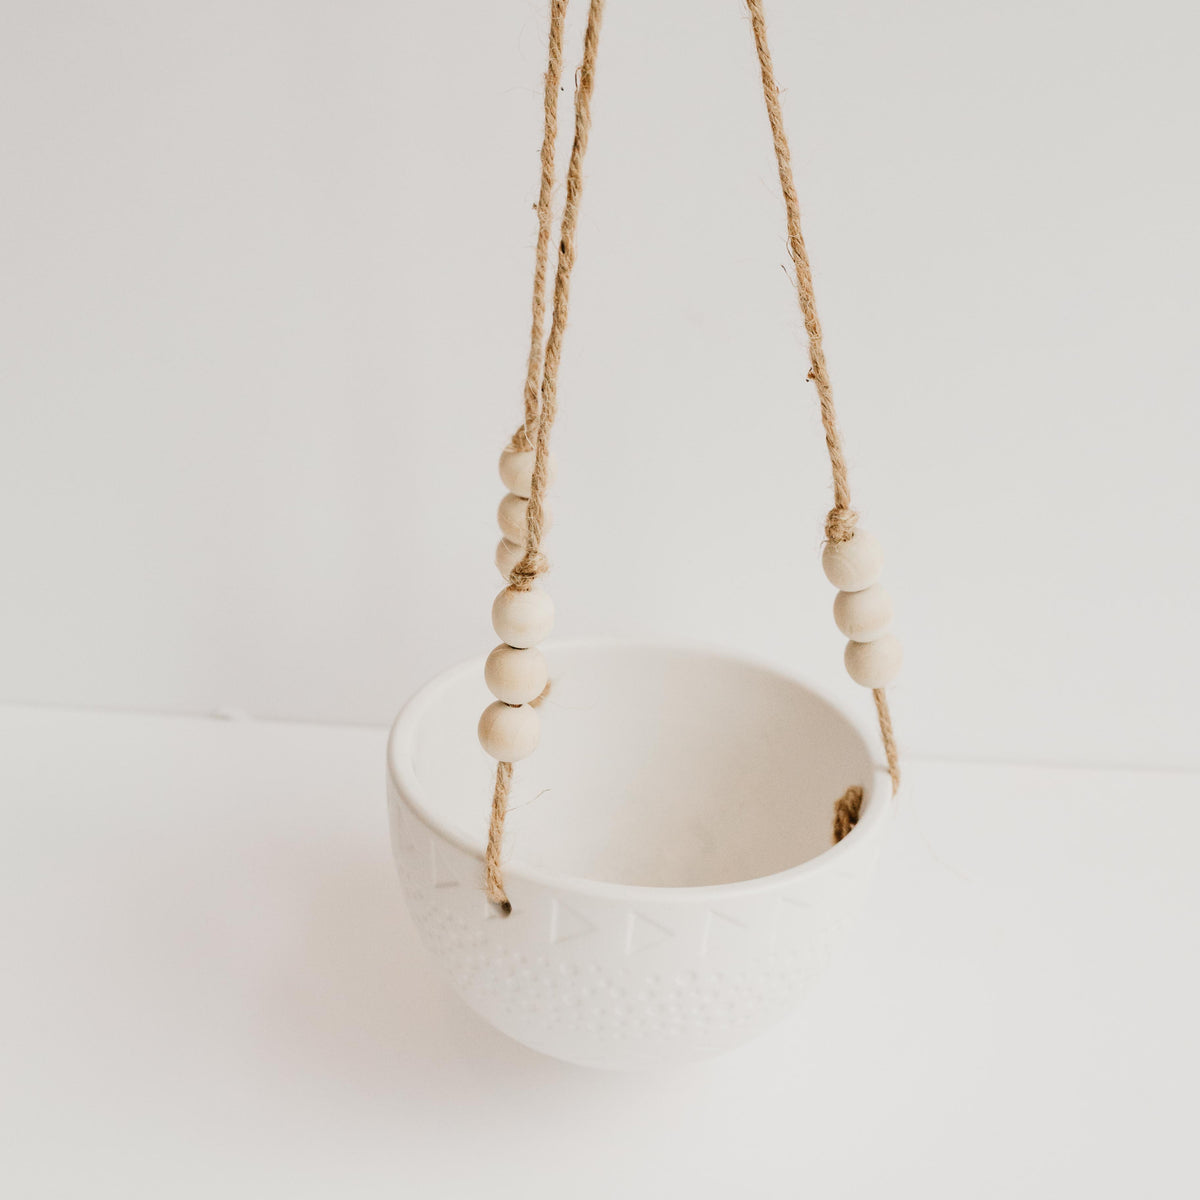 Hanging White Patterned Planter with Wood Beads